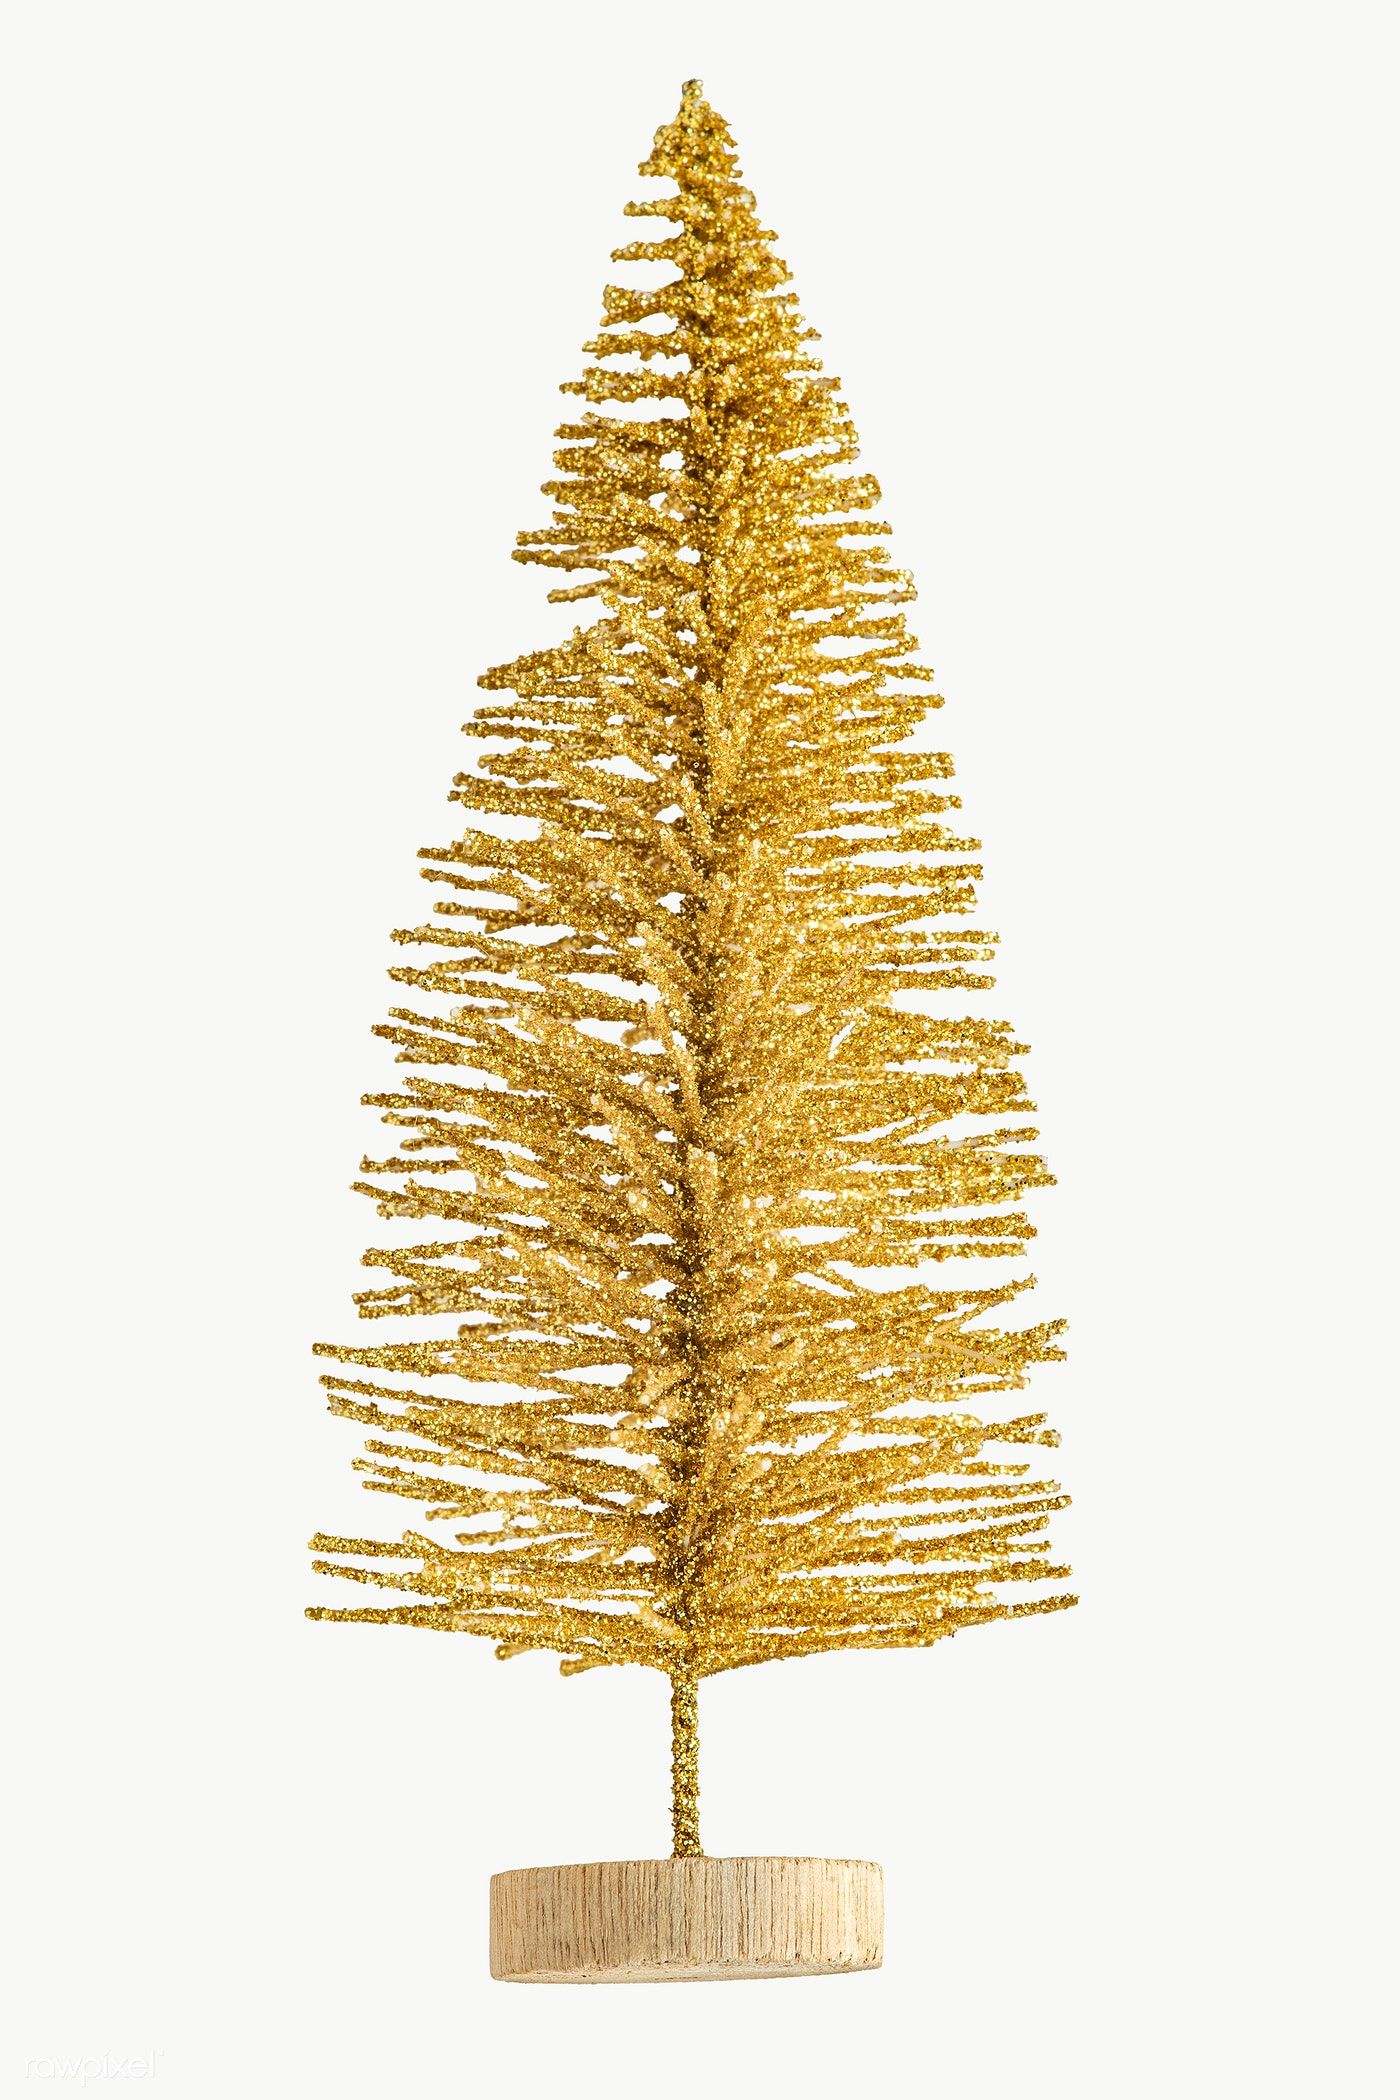 Download Premium Png Of A Gold Christmas Tree Ornament On Transparent Gold Christmas Tree Christmas Tree Ornaments Gold Christmas